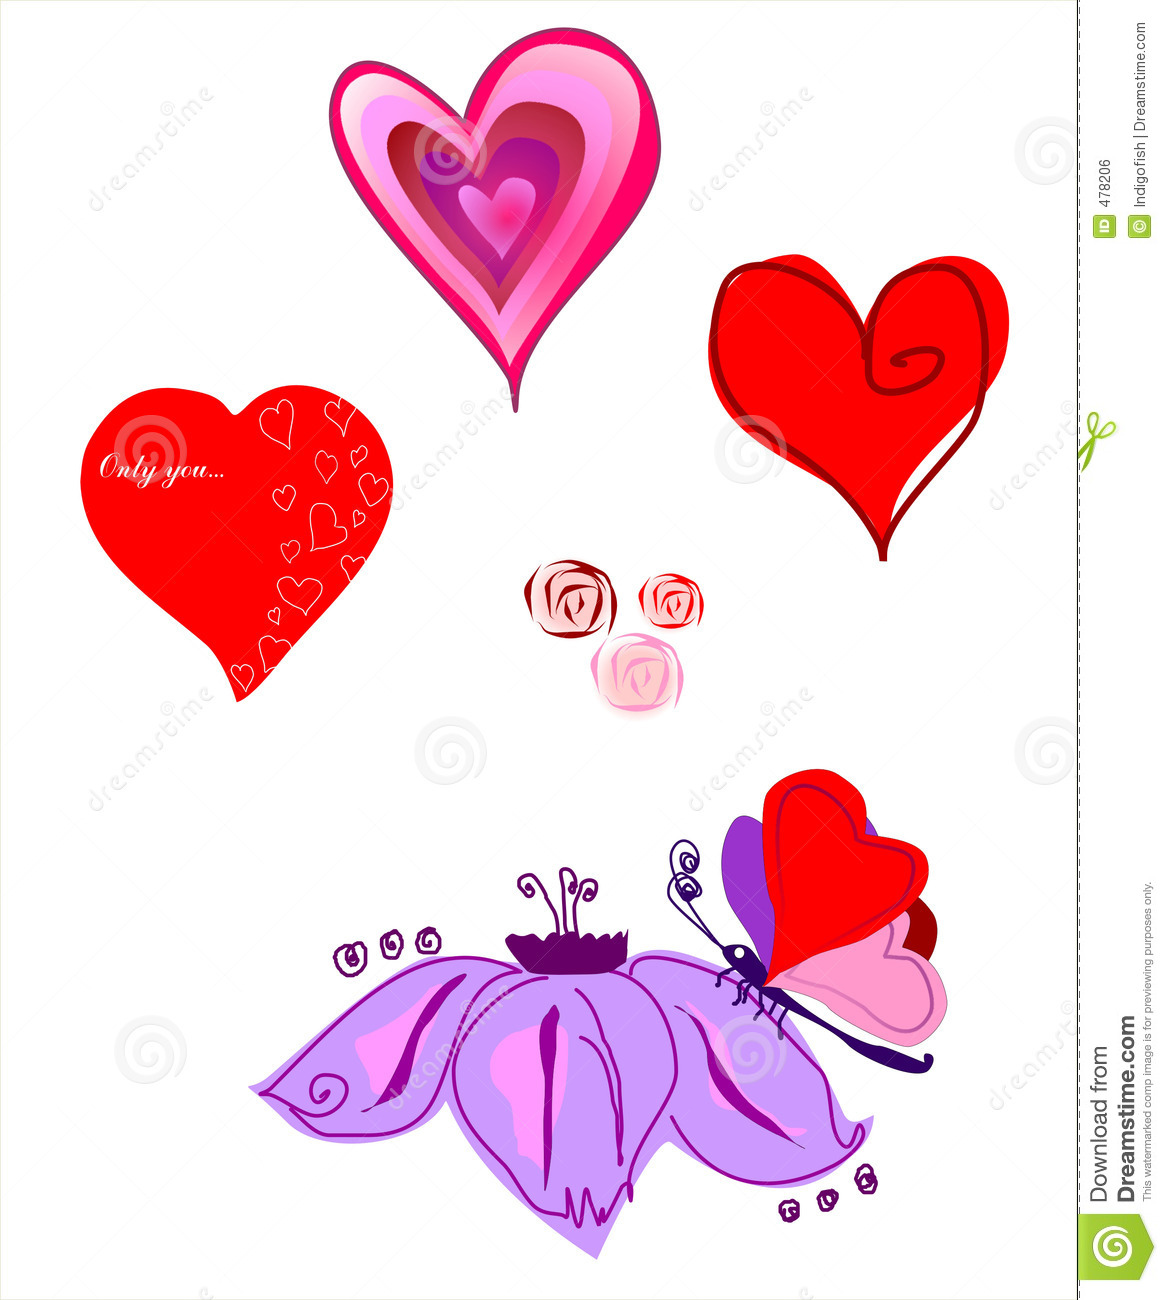 vector a picture by day of st valentine royalty free. Black Bedroom Furniture Sets. Home Design Ideas